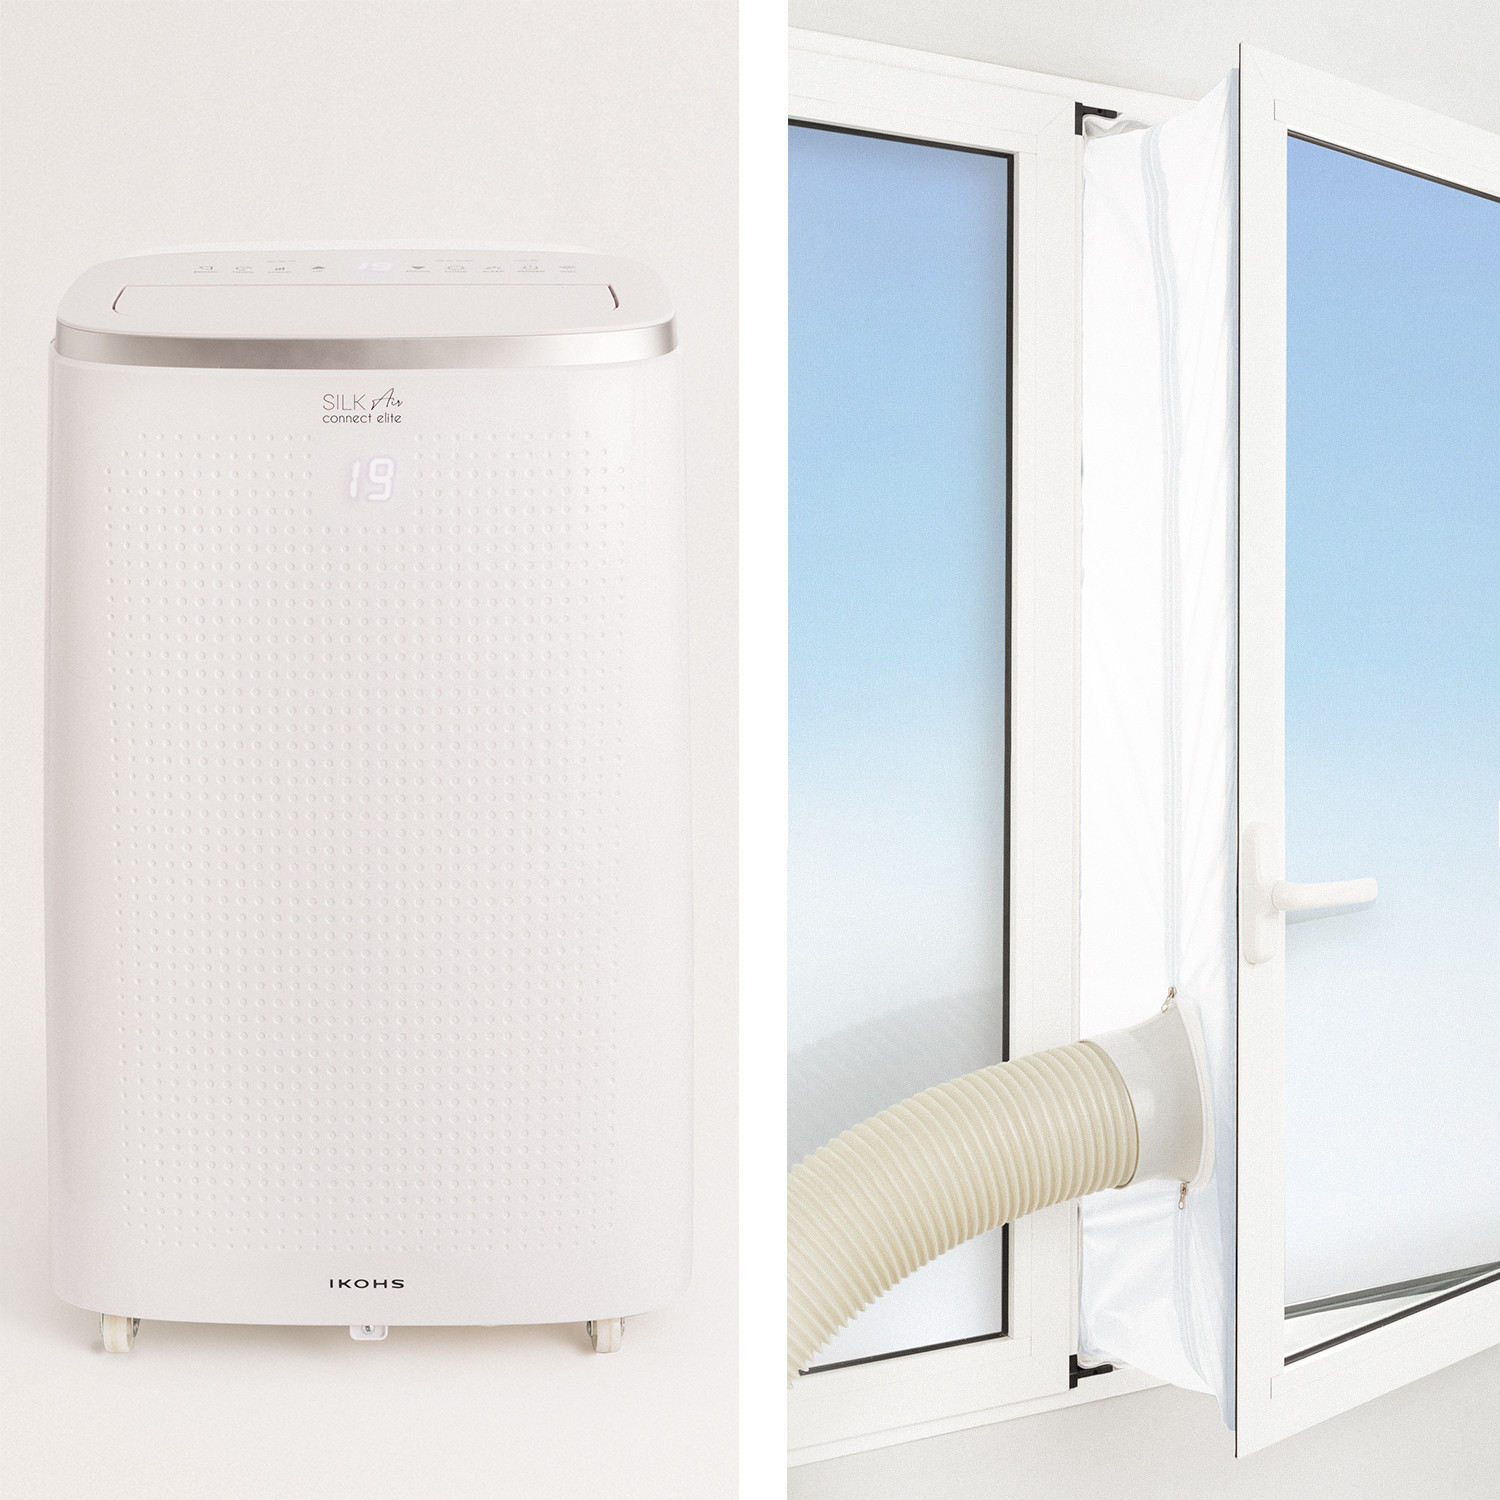 PACK - SILKAIR ELITE Portable Air Conditioner 4in1 WiFi + EXTRACTION AND INSULATION KIT for casement windows, imagen de galería 1